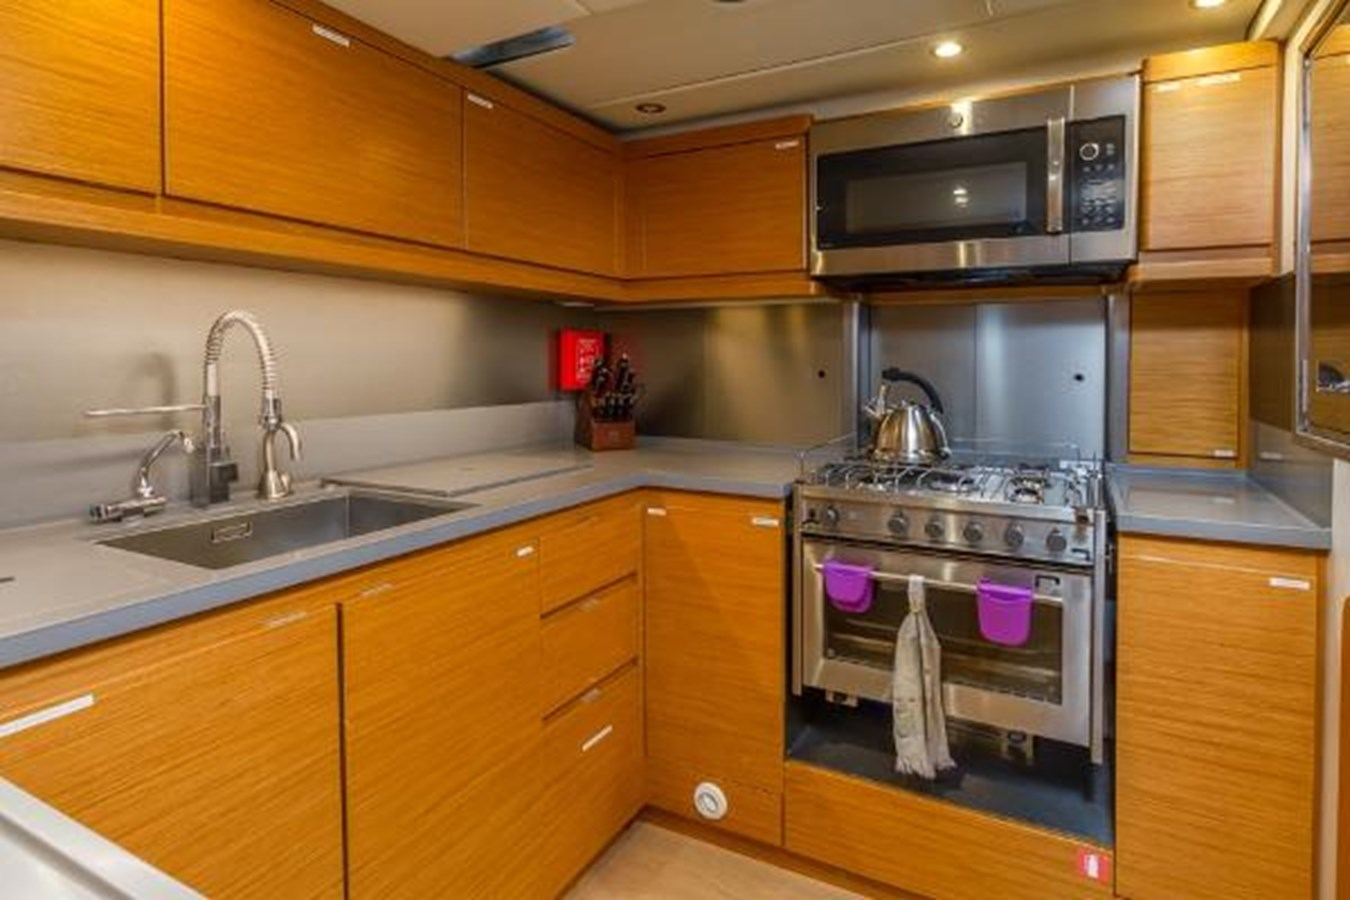 Galley 2020 CUSTOM Farr 85 Deck Salon Deck Saloon 2798876